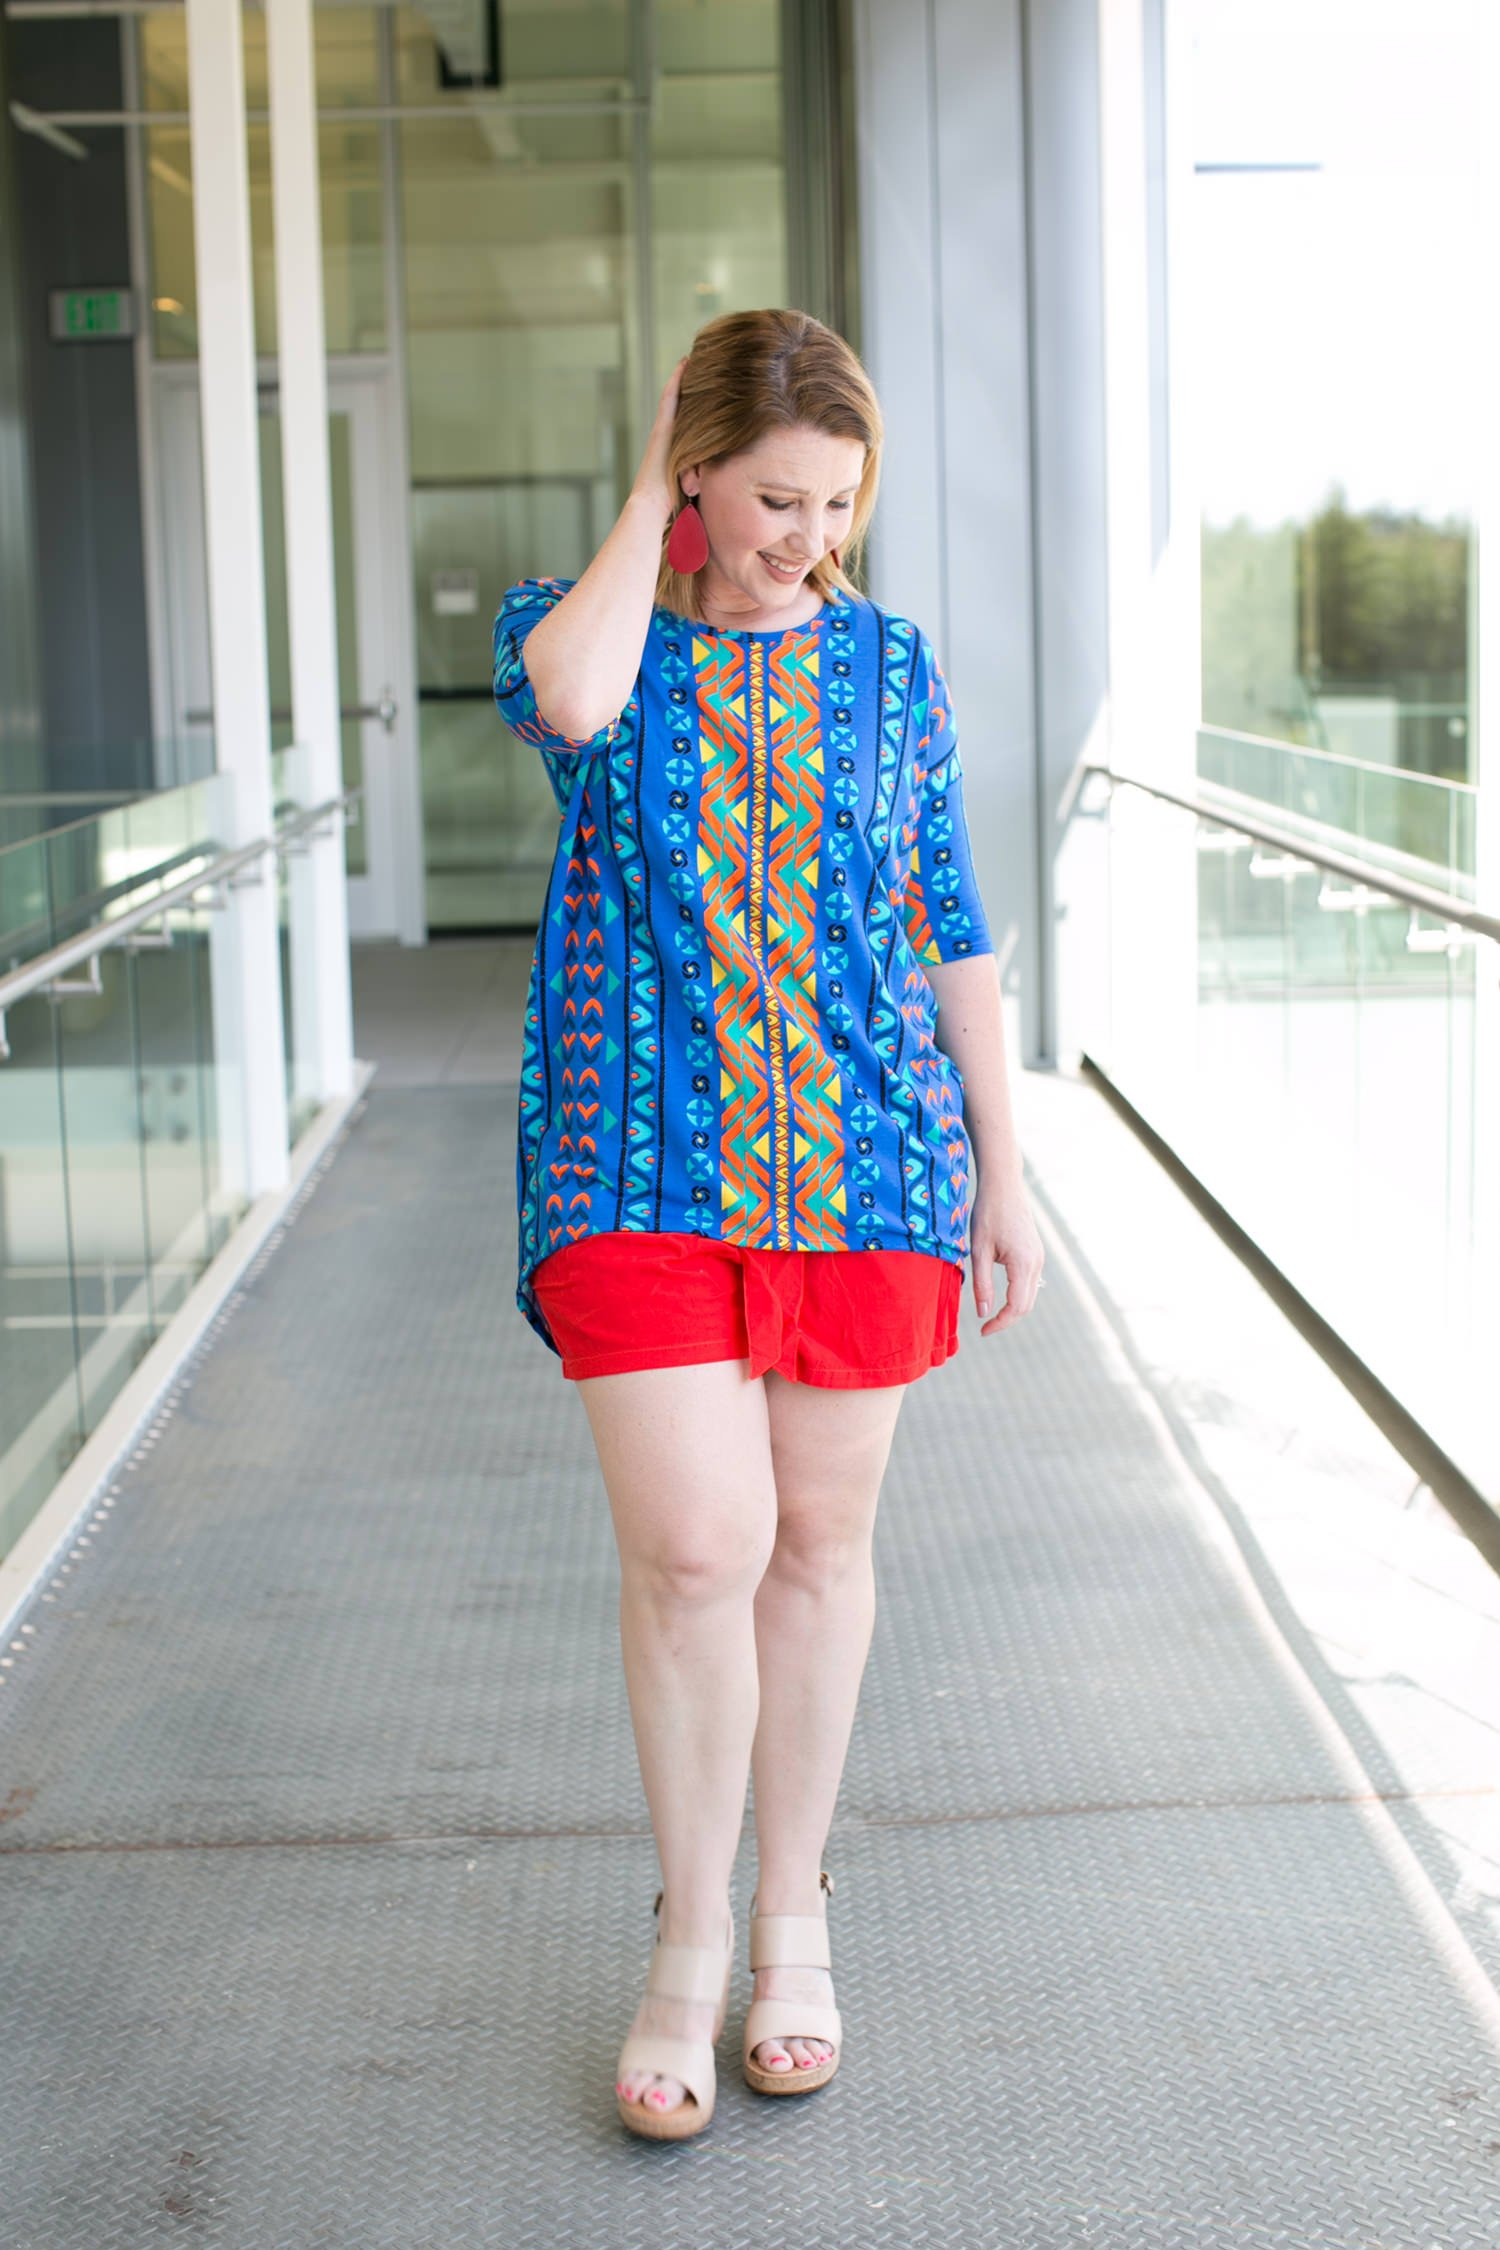 Red Shorts and Four Other Spring Outfit Ideas by fashion blogger Carly from lipgloss and Crayons